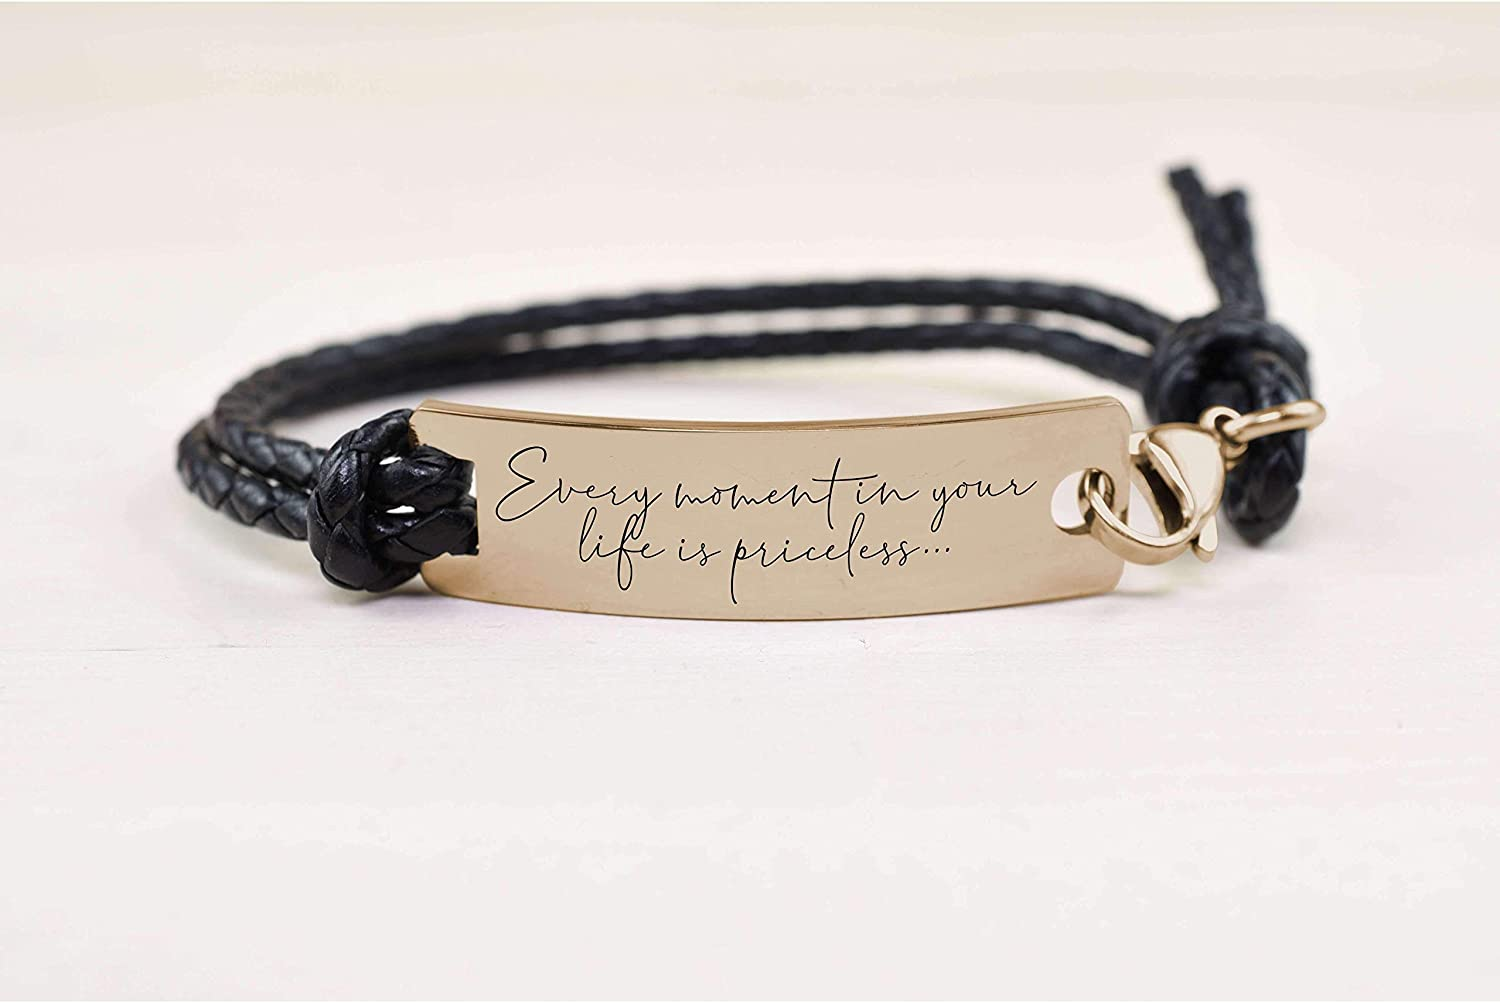 Pink Box Fully Adjustable Braided Leather Inspirational Bracelet Gold Every Moment